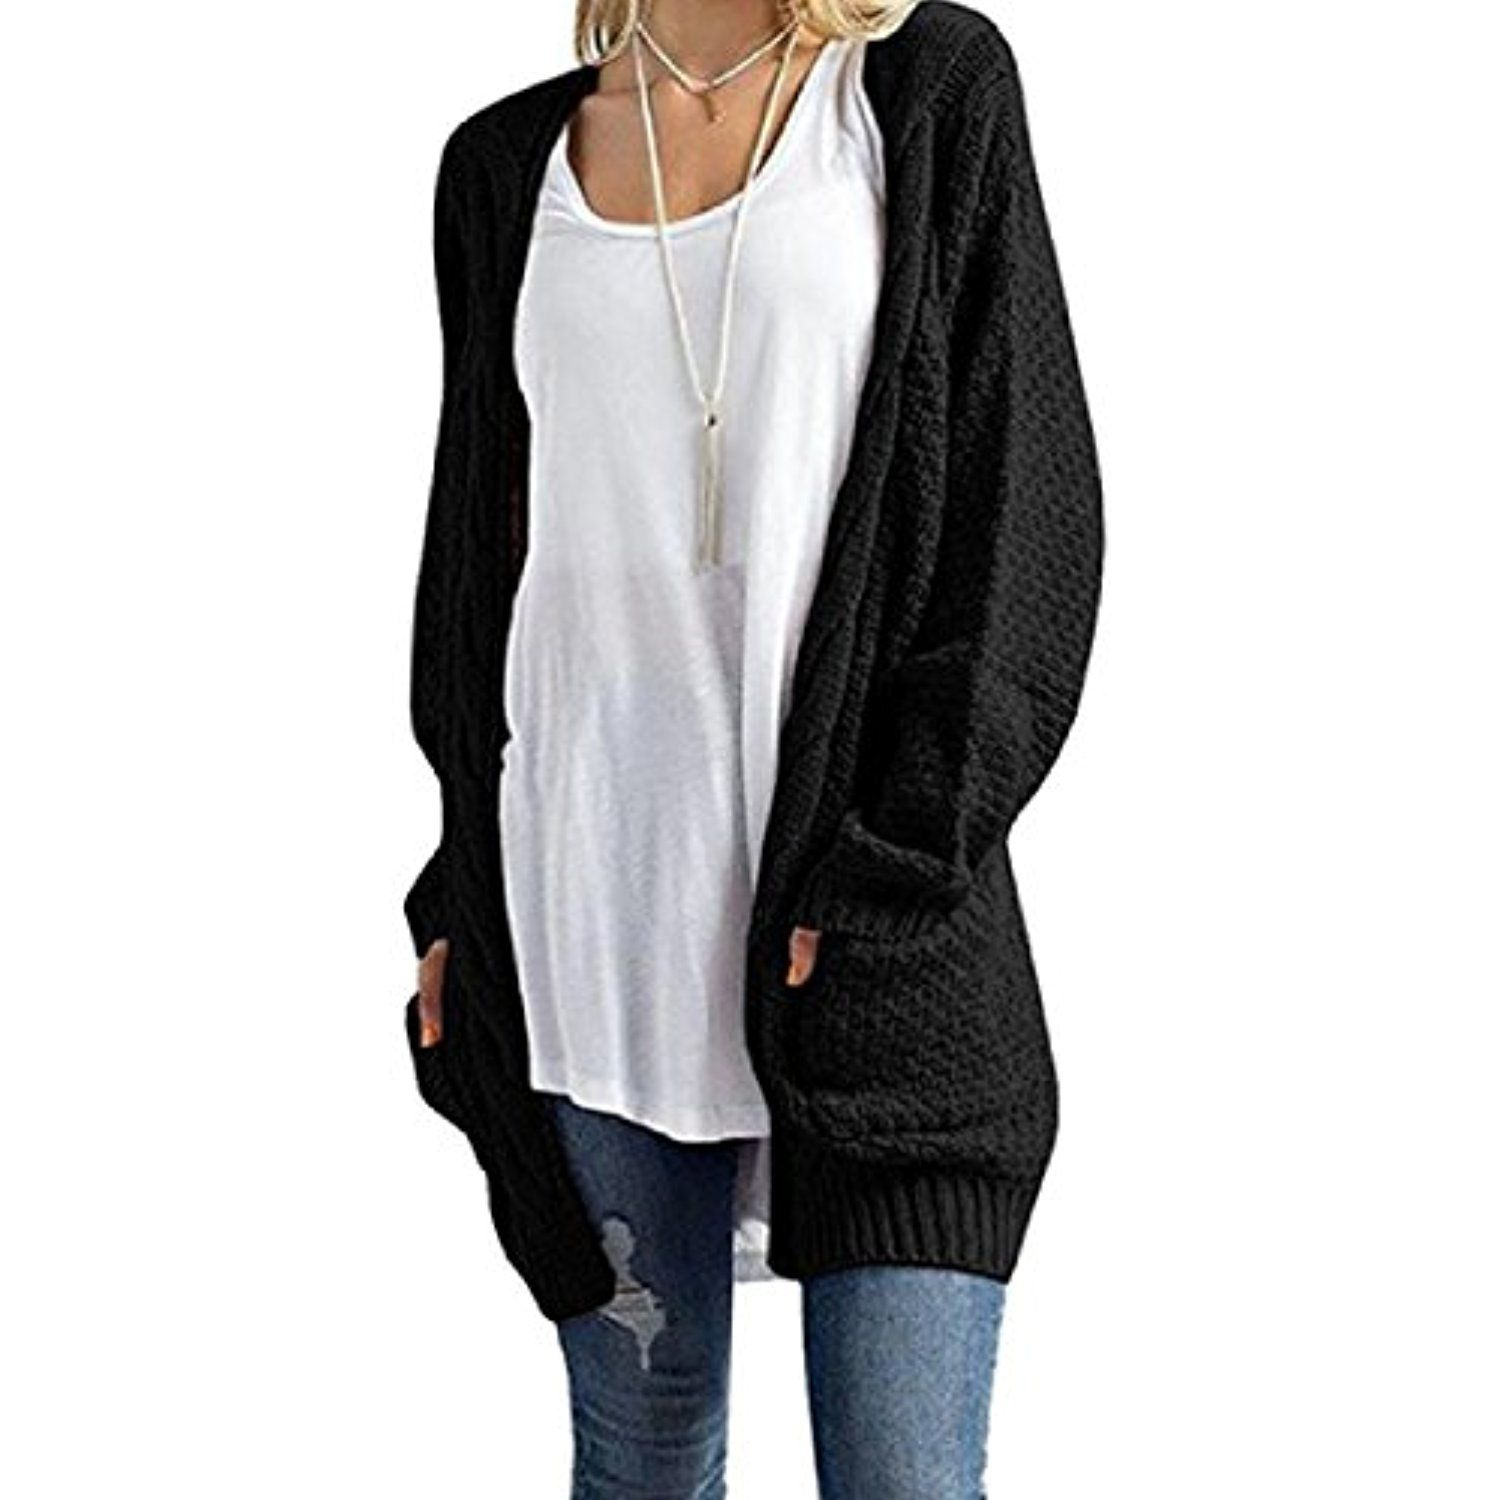 Womens Hollow Solid Modern Mid Length Cardigan Sweater Jacket ...